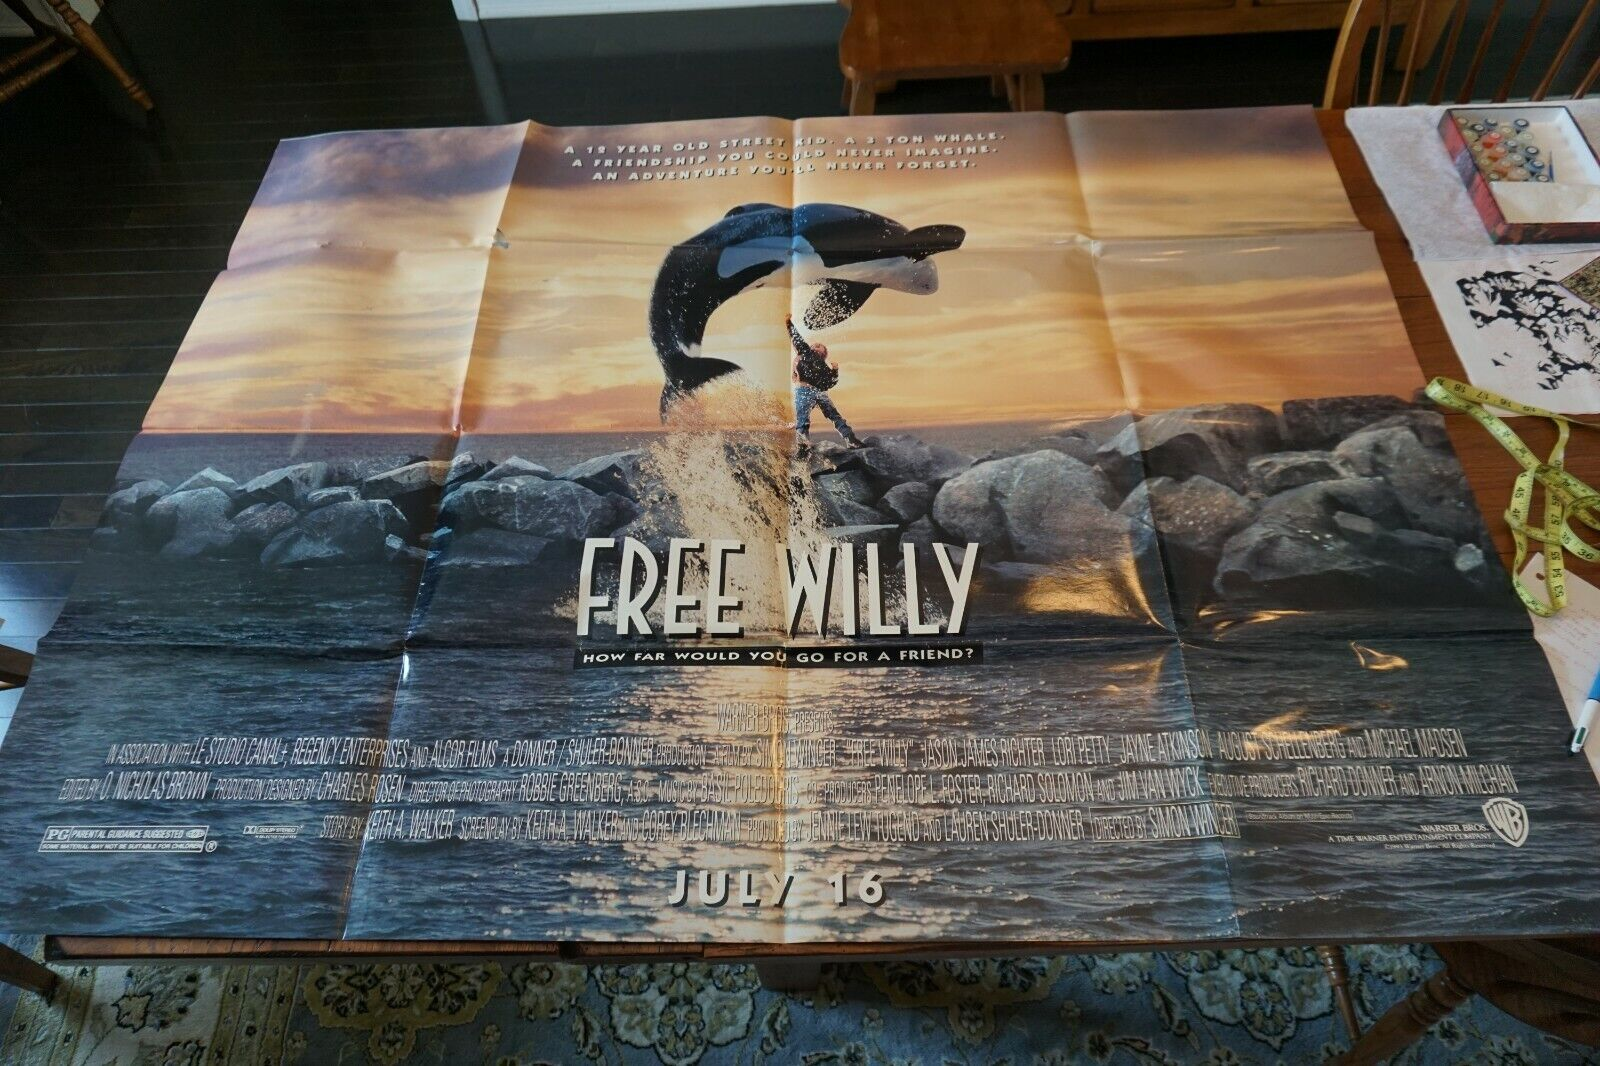 Free Willy Original Two Sheet Movie Poster Folded 45x60 5 Feet - $35.00